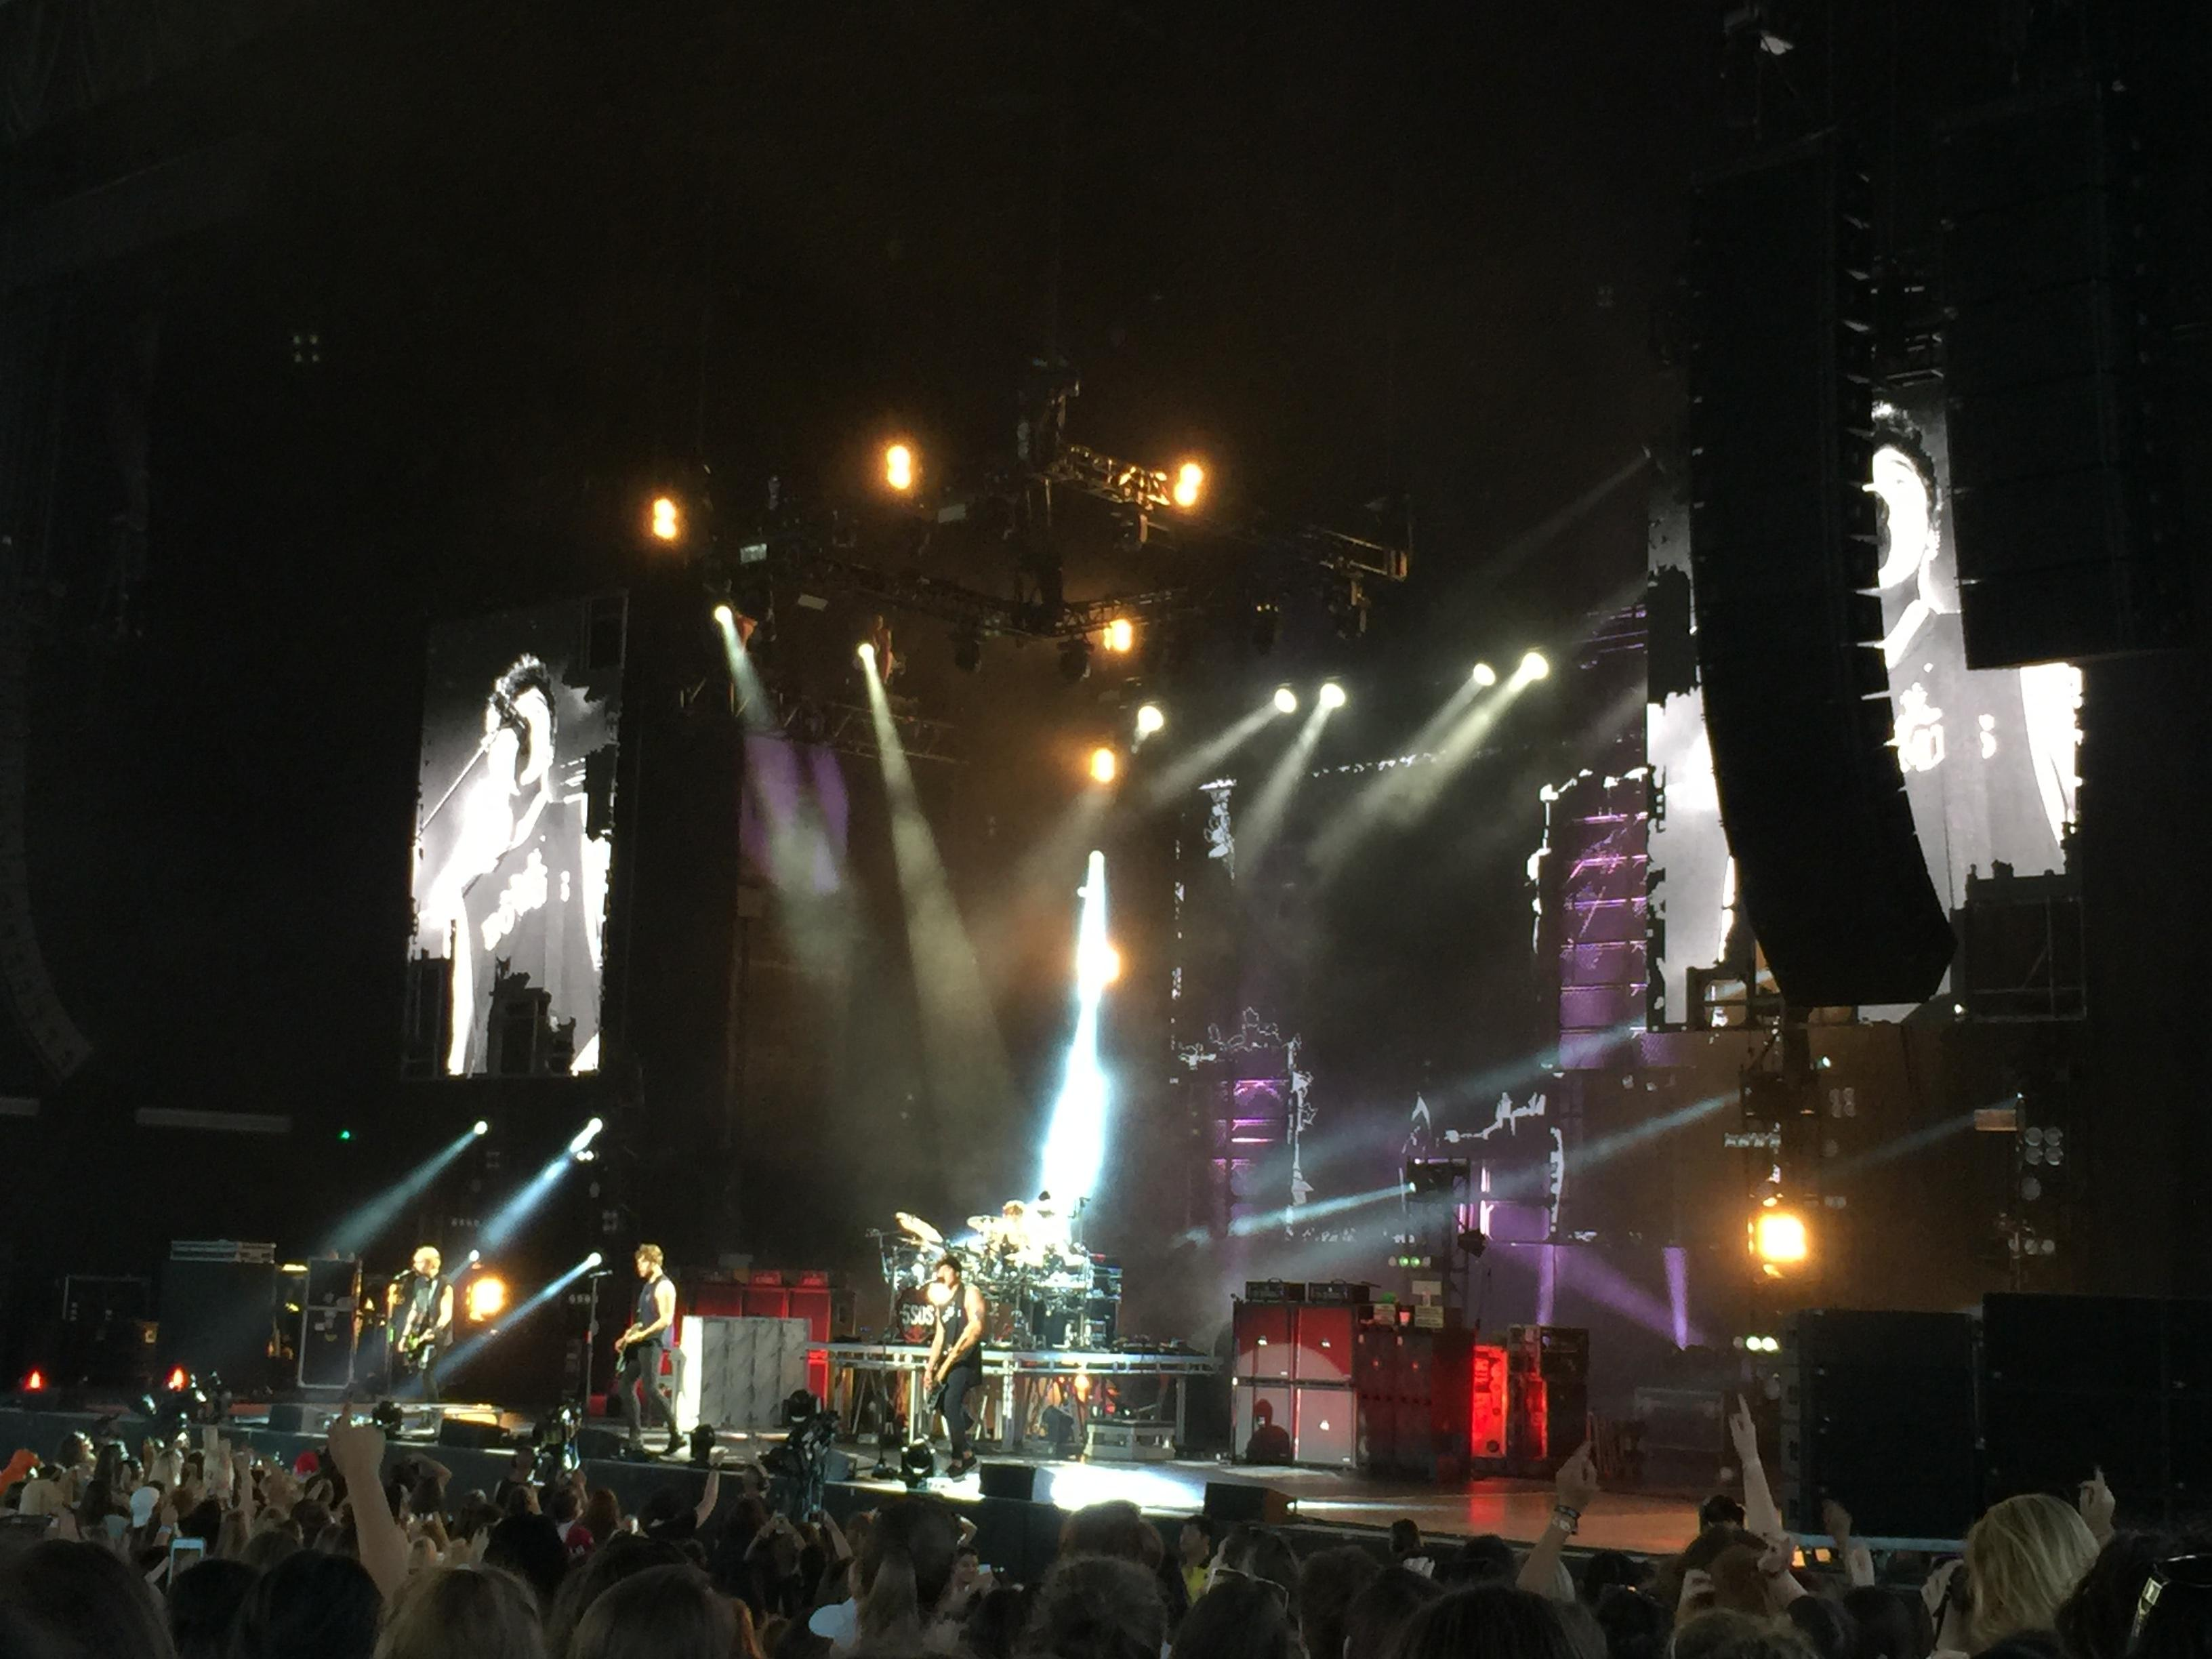 Budweiser Stage Section 201 Row M